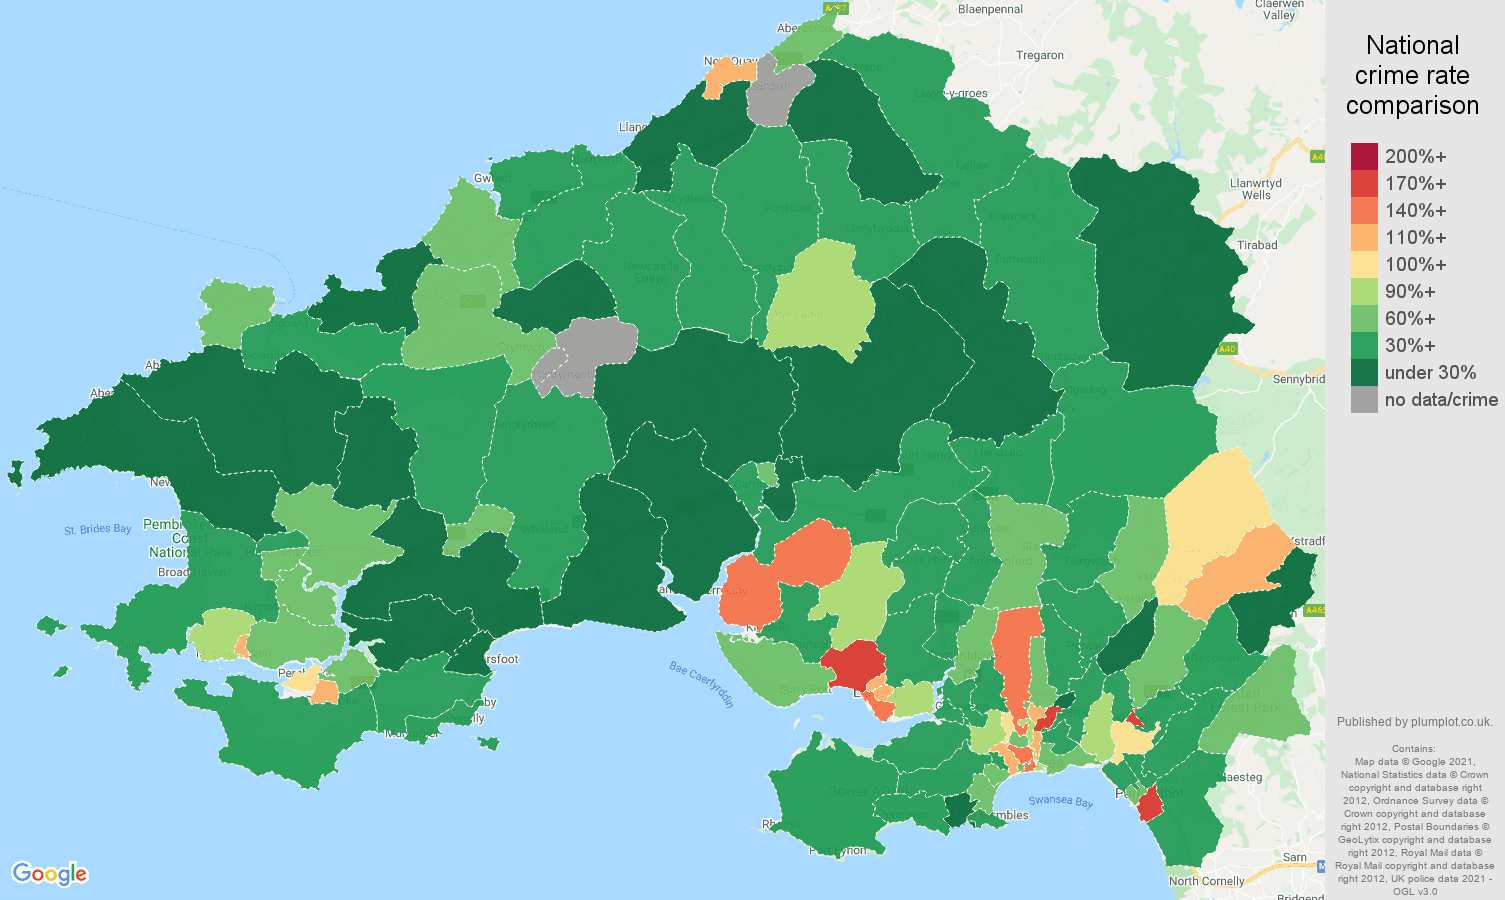 Swansea burglary crime rate comparison map